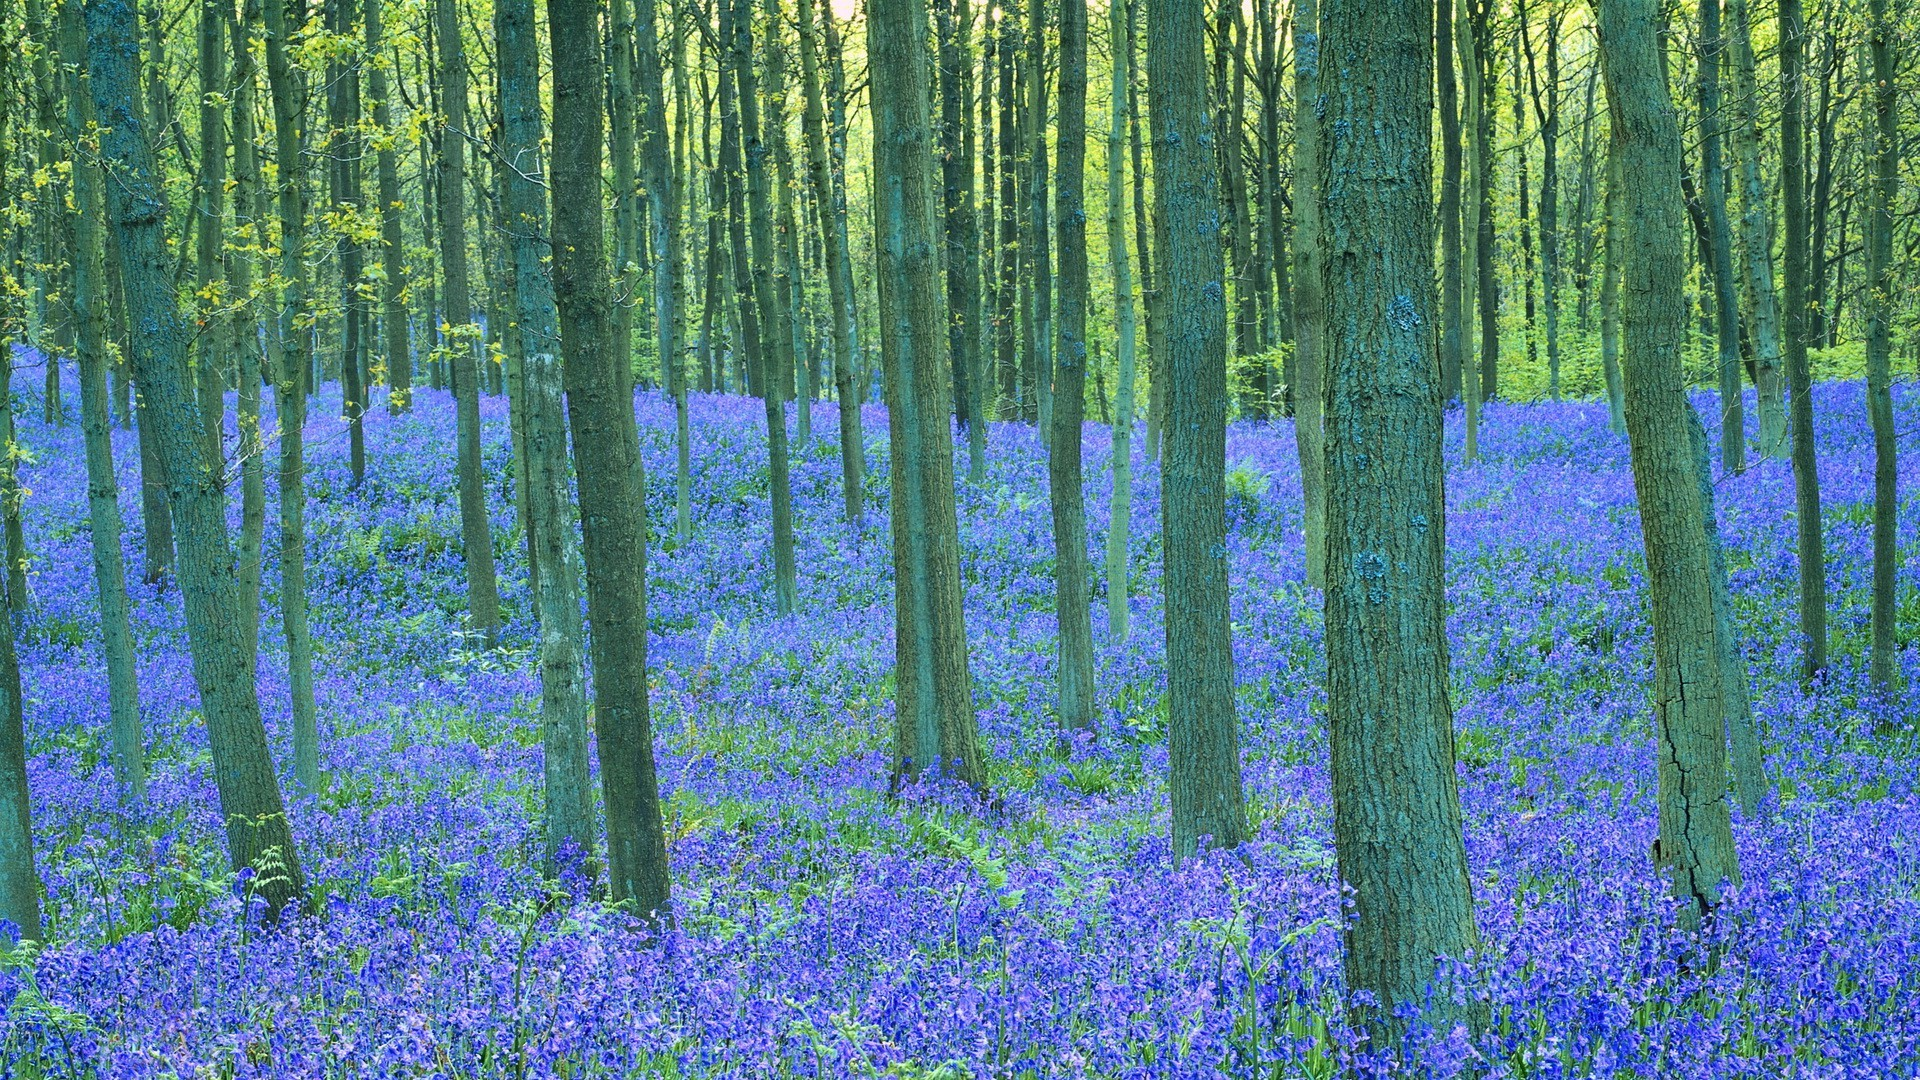 flowers wood landscape nature scenic flower leaf tree countryside scenery outdoors season flora park dawn beech idyllic rug growth rural